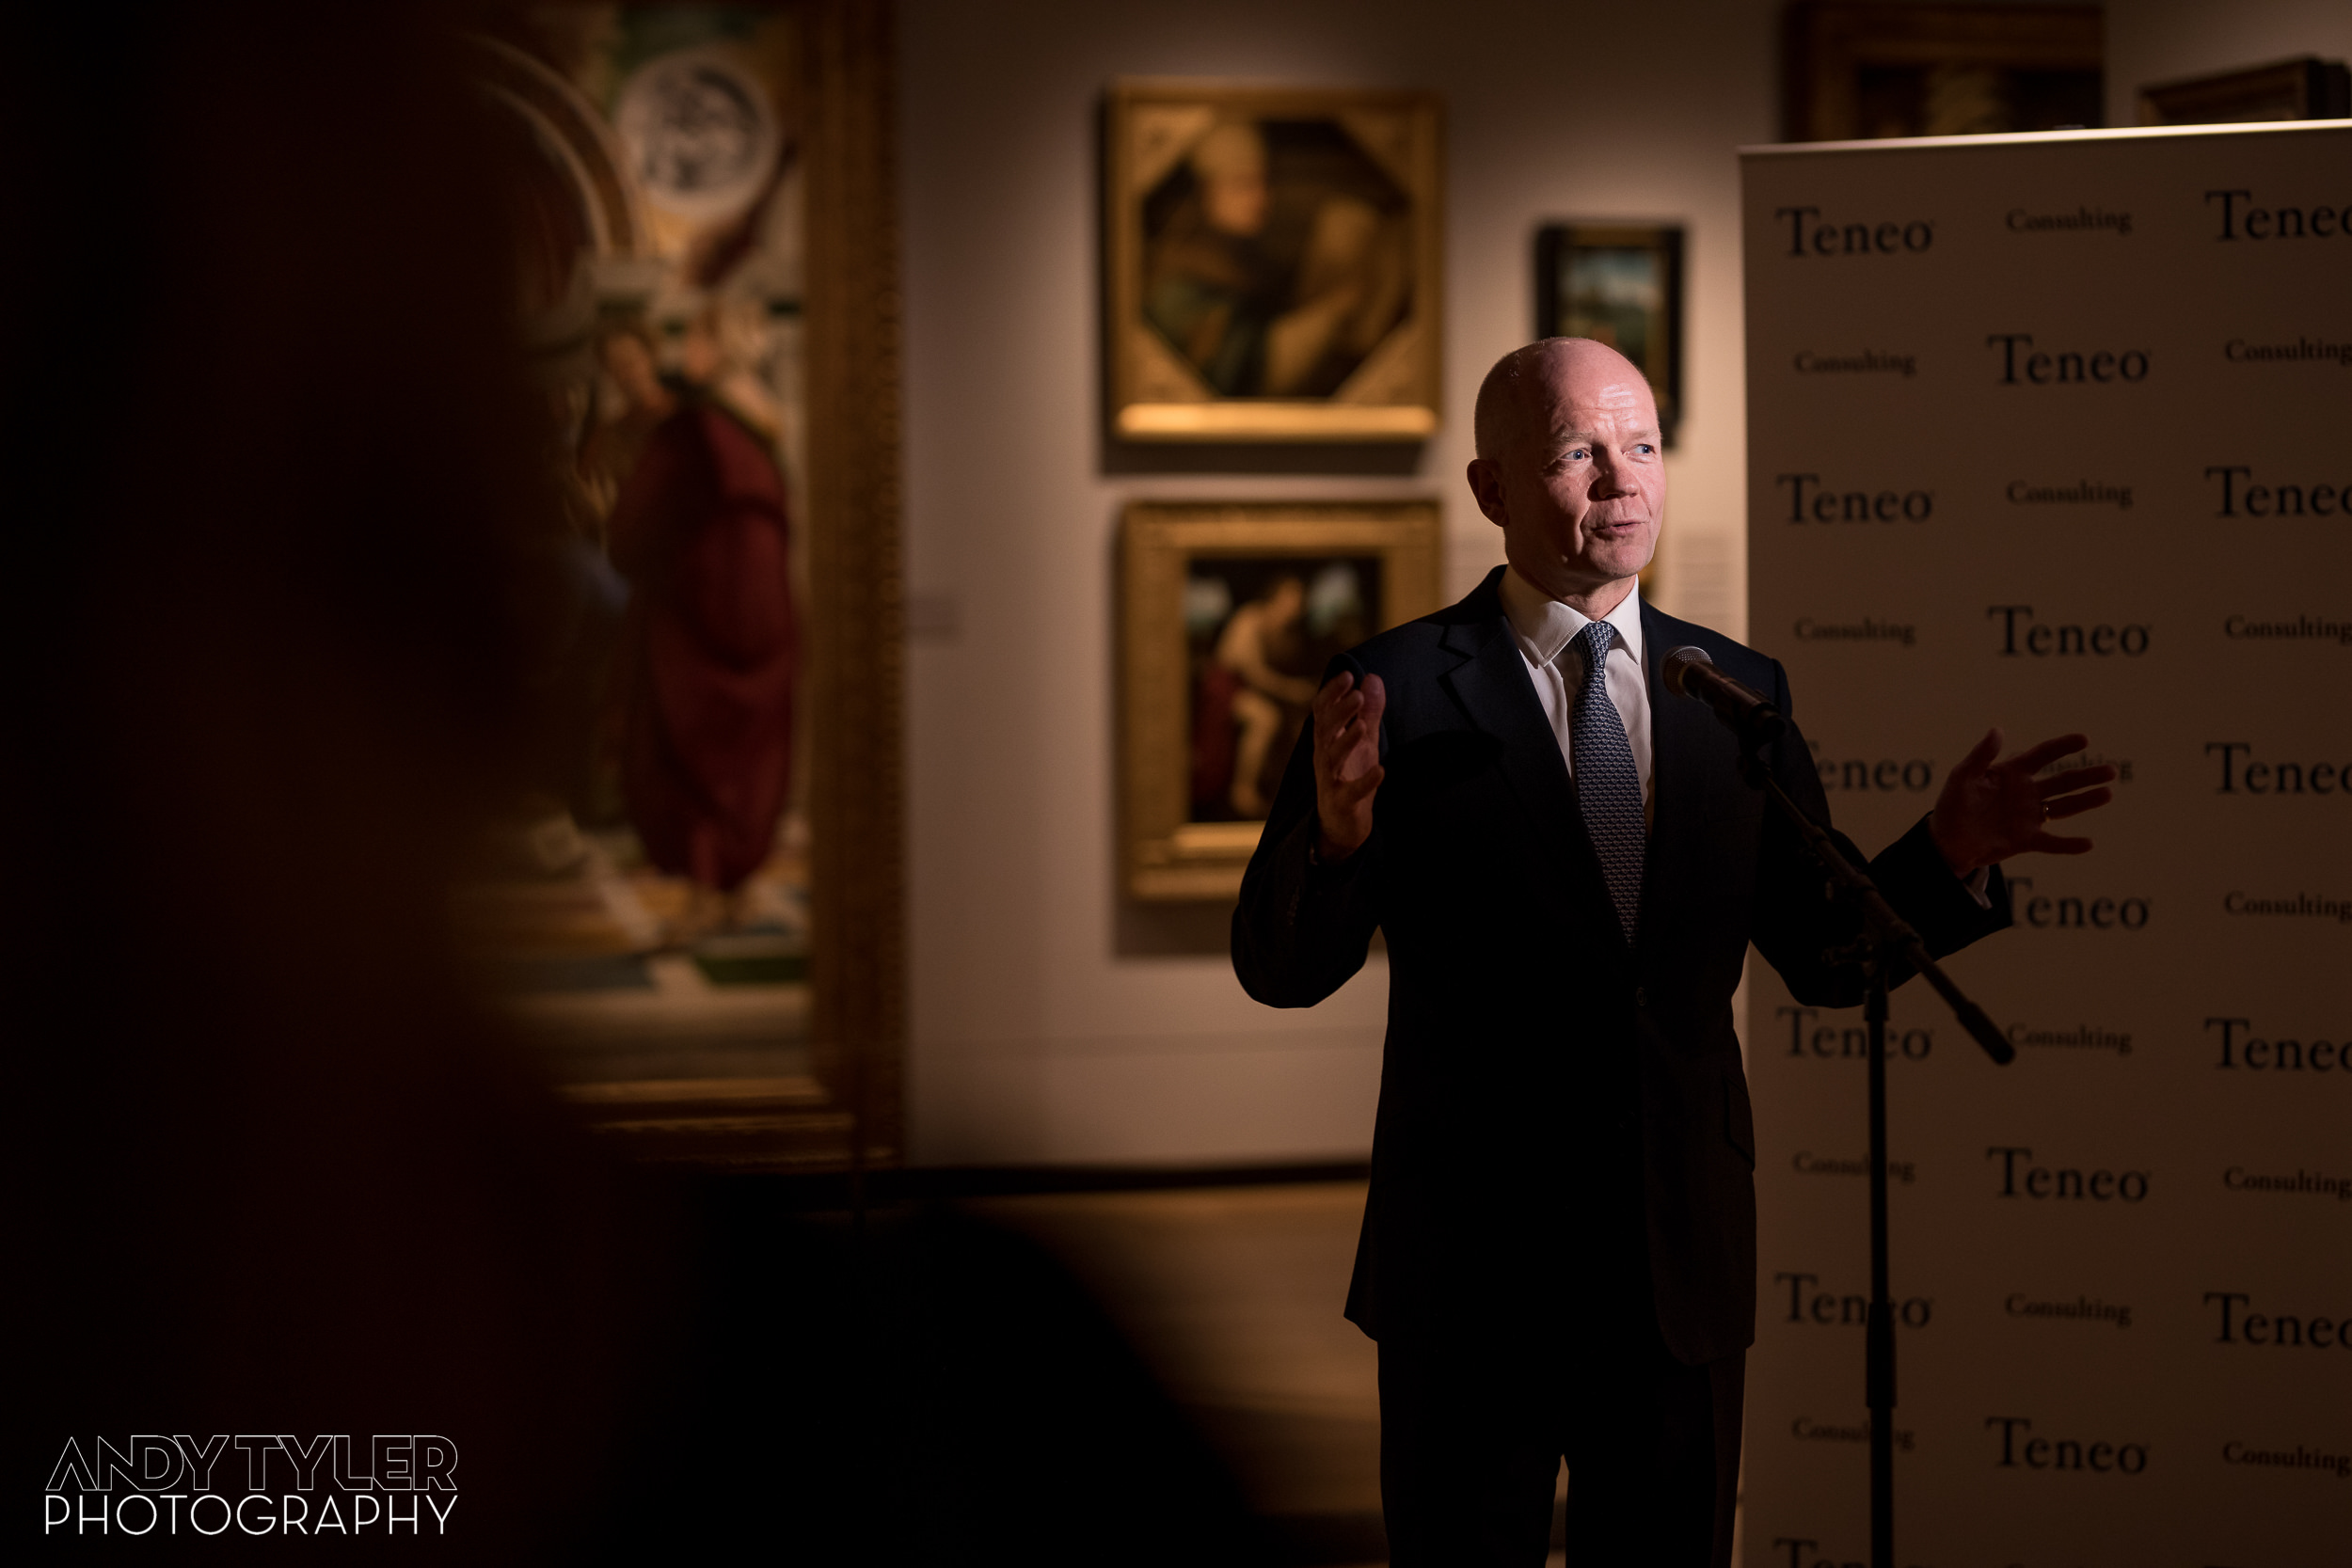 Andy_Tyler_Photography_London_Corporate_Reception_016_Andy_Tyler_Photography_Teneo_National_Gallery_100_5DA_5104.jpg